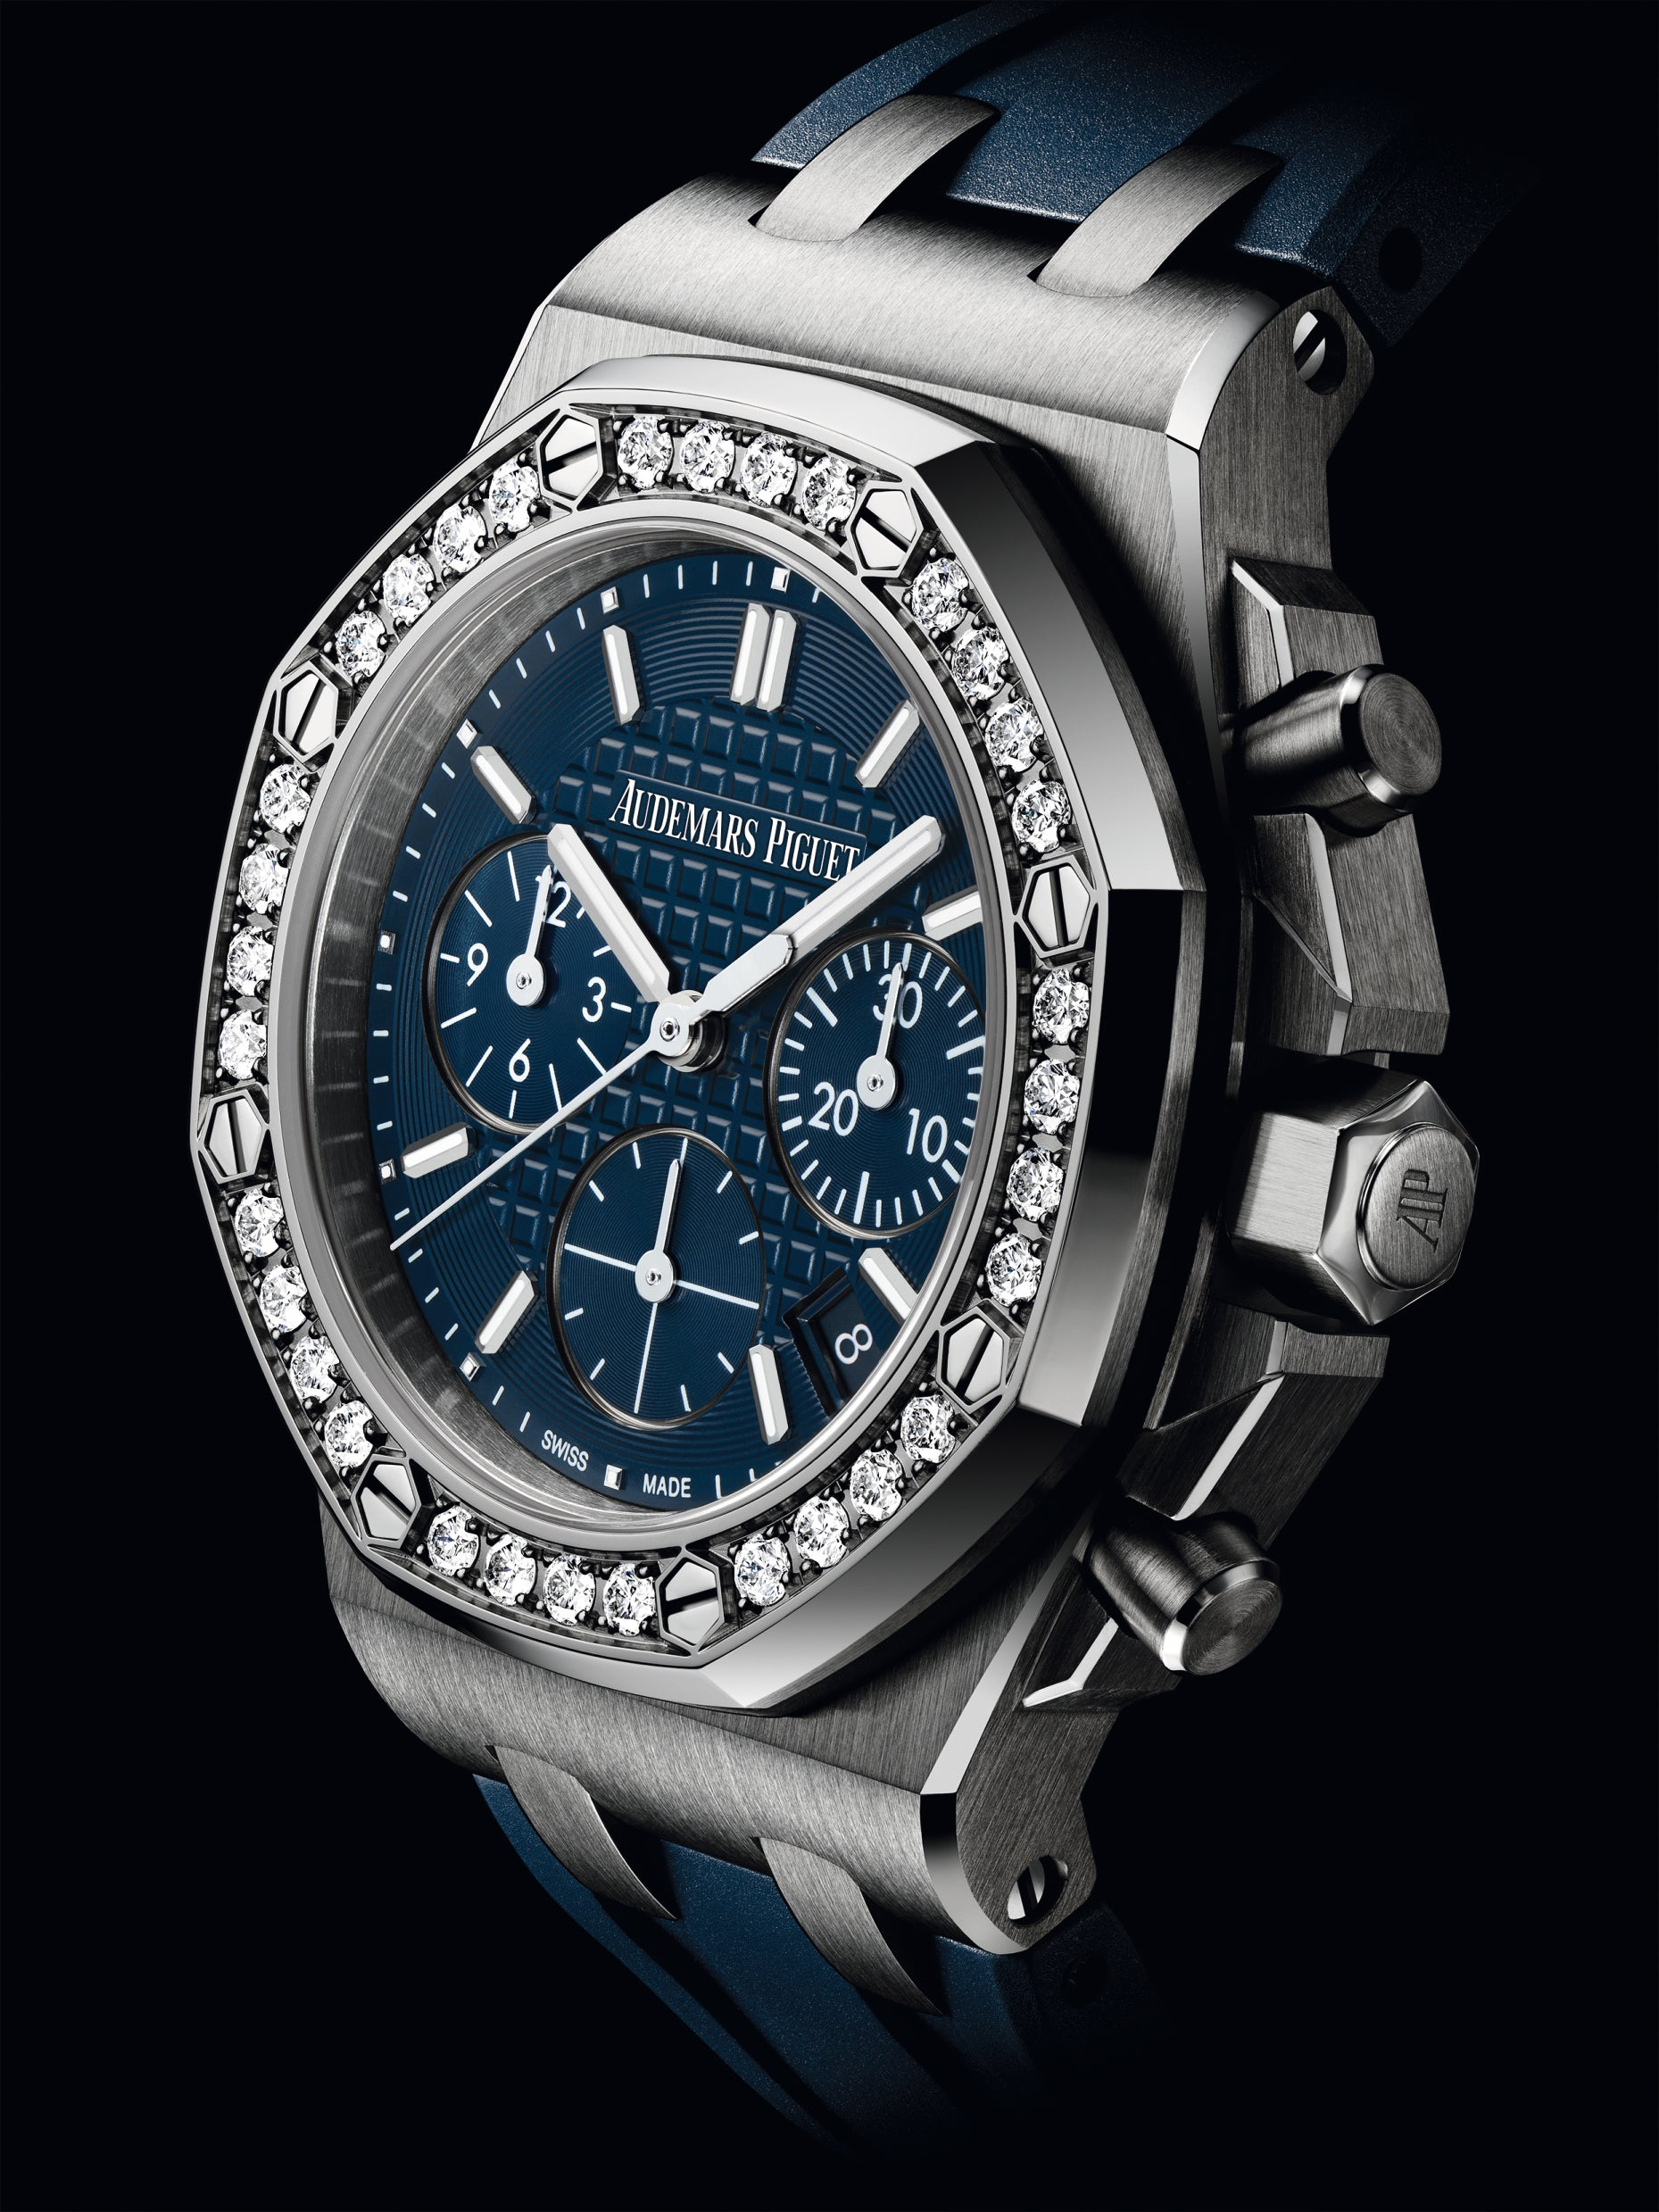 Royal Oak Offshore Ladies Chronograph 26231ST.ZZ.D027CA.01 - Audemars Piguet